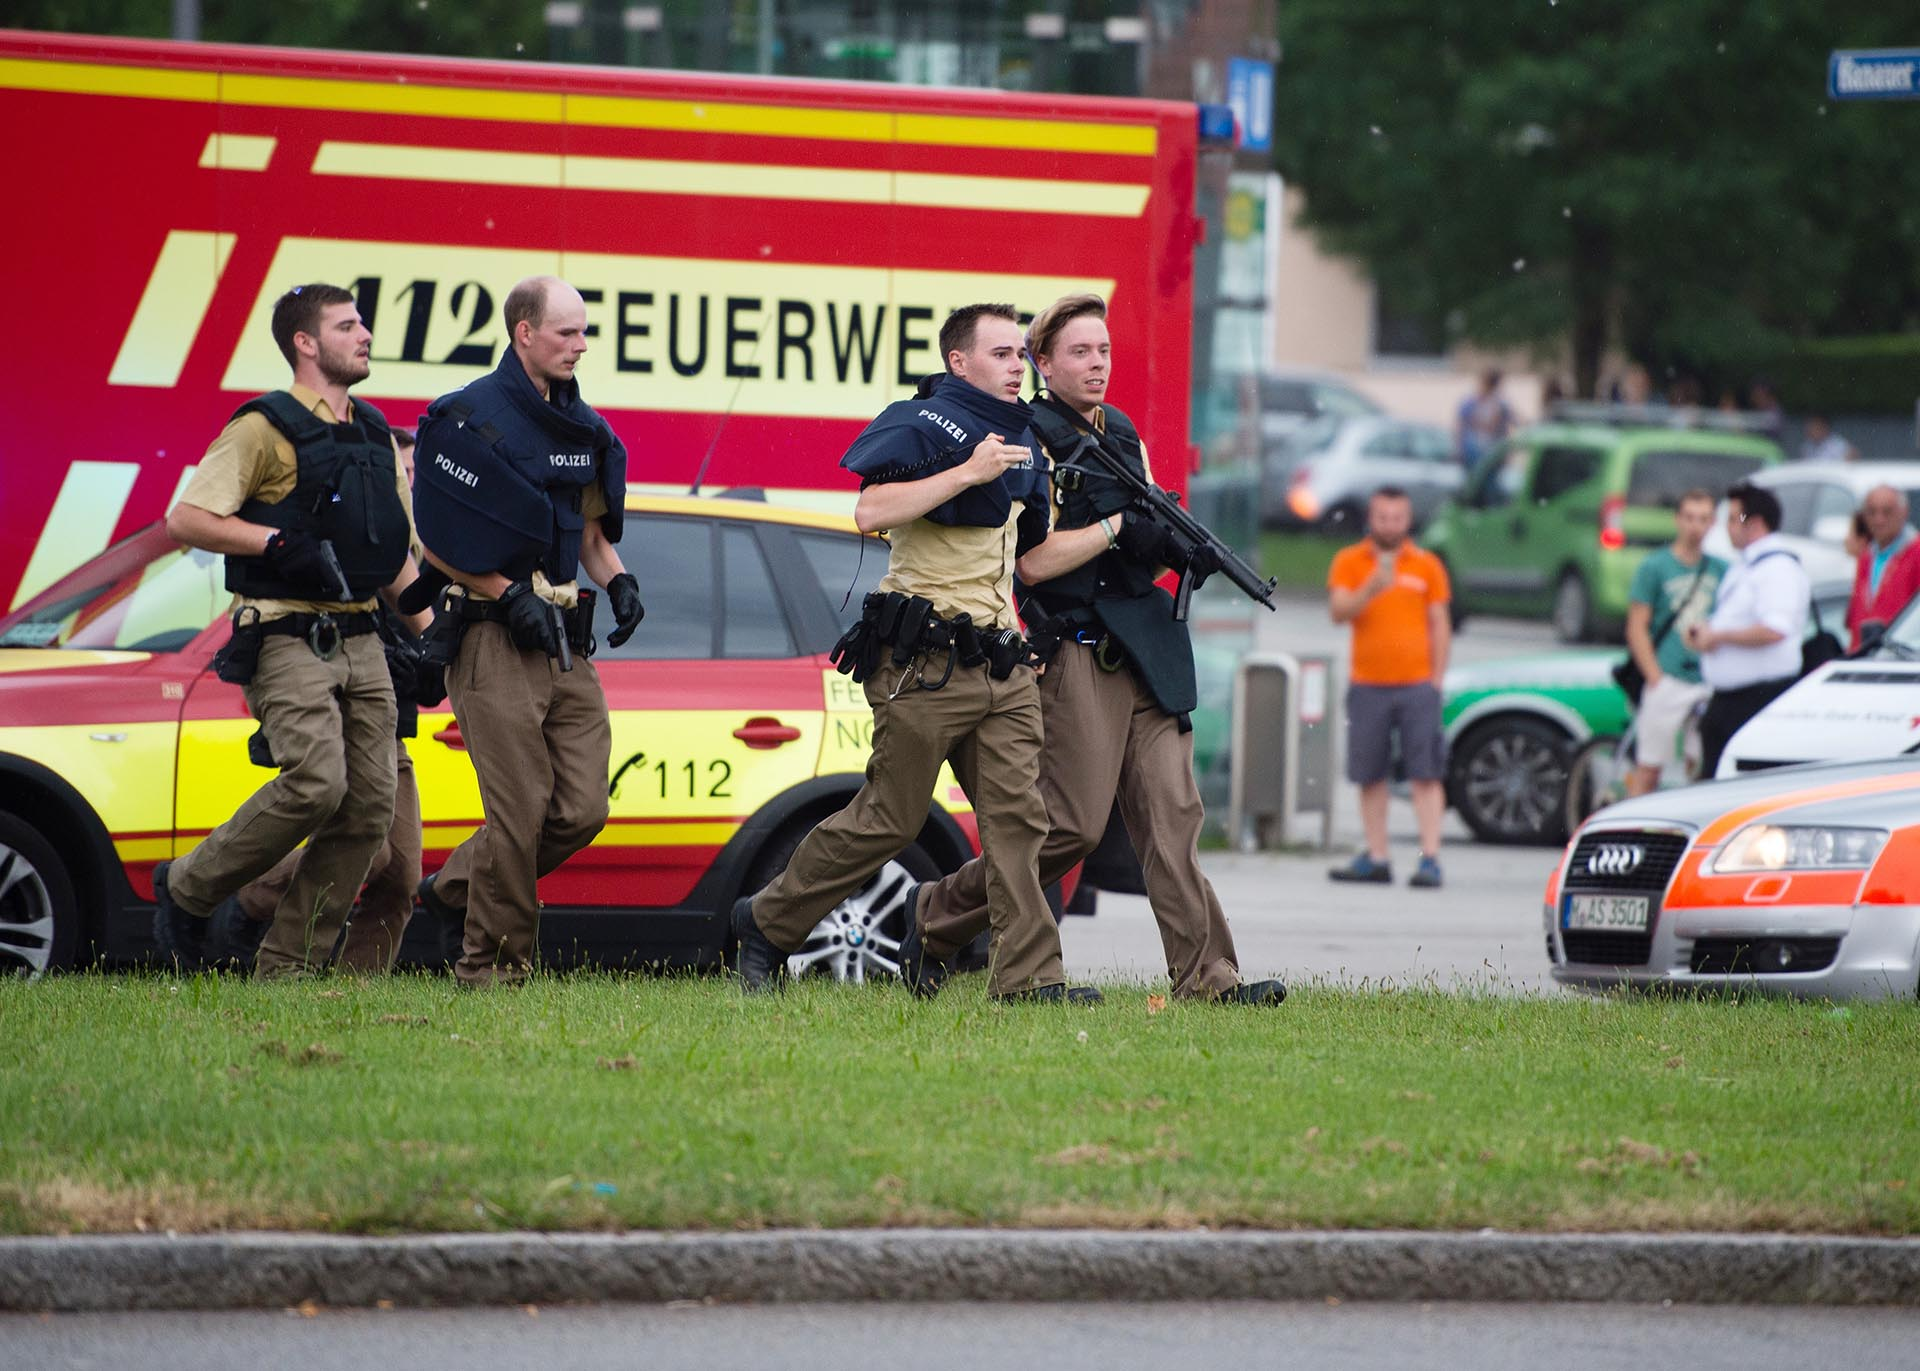 Policemen arrive at a shopping centre in which a shooting was reported in Munich, southern Germany, Friday, July 22, 2016. Situation after a shooting in the Olympia shopping centre in Munich is unclear. (Matthias Balk/dpa via AP)